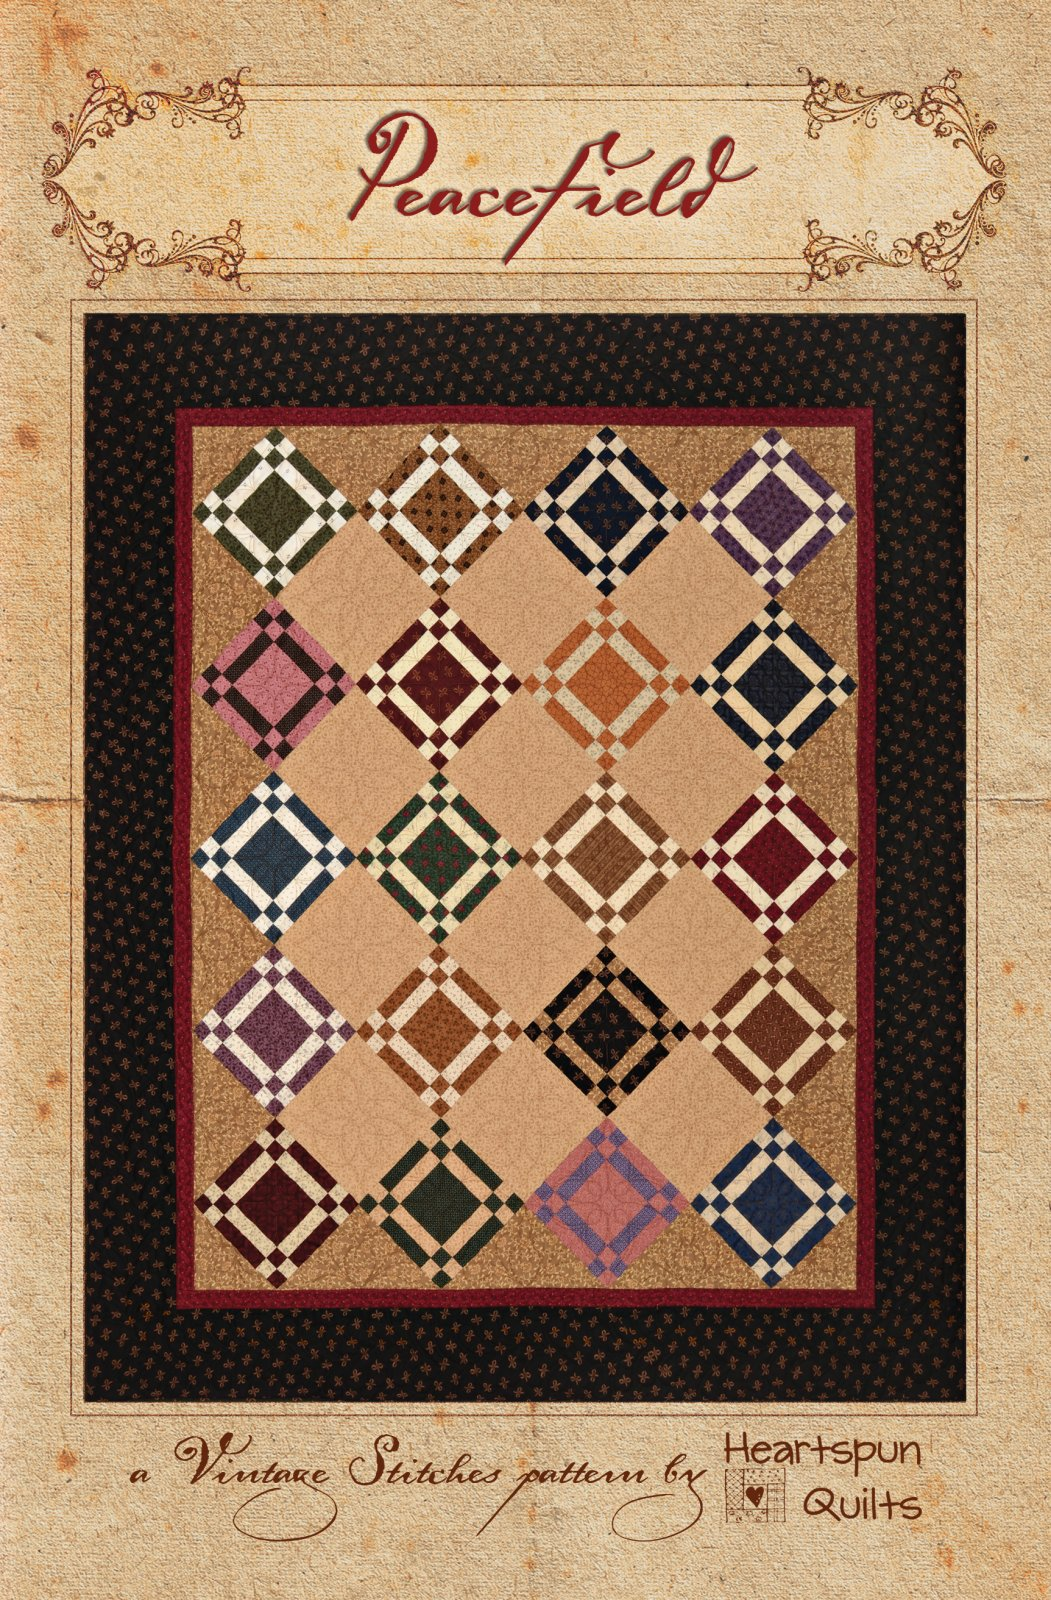 Peacefield Quilt Kit